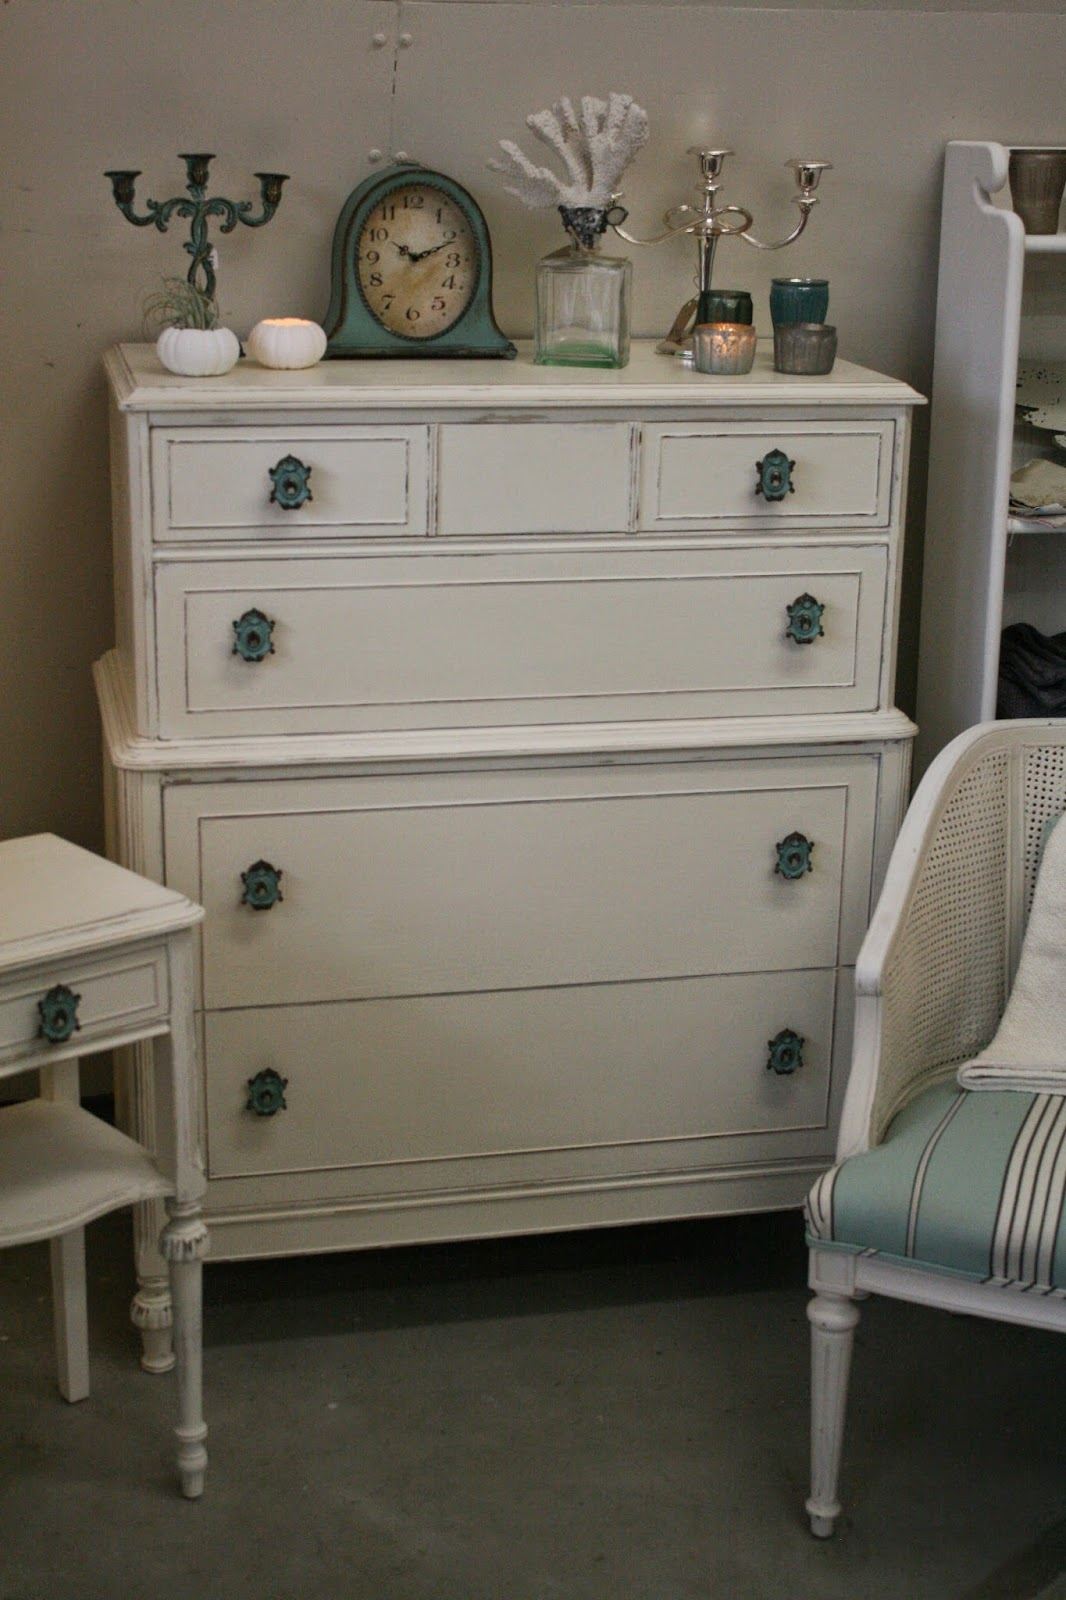 Reloved Rubbish Old White Bedroom Set With Keyhole Knobs